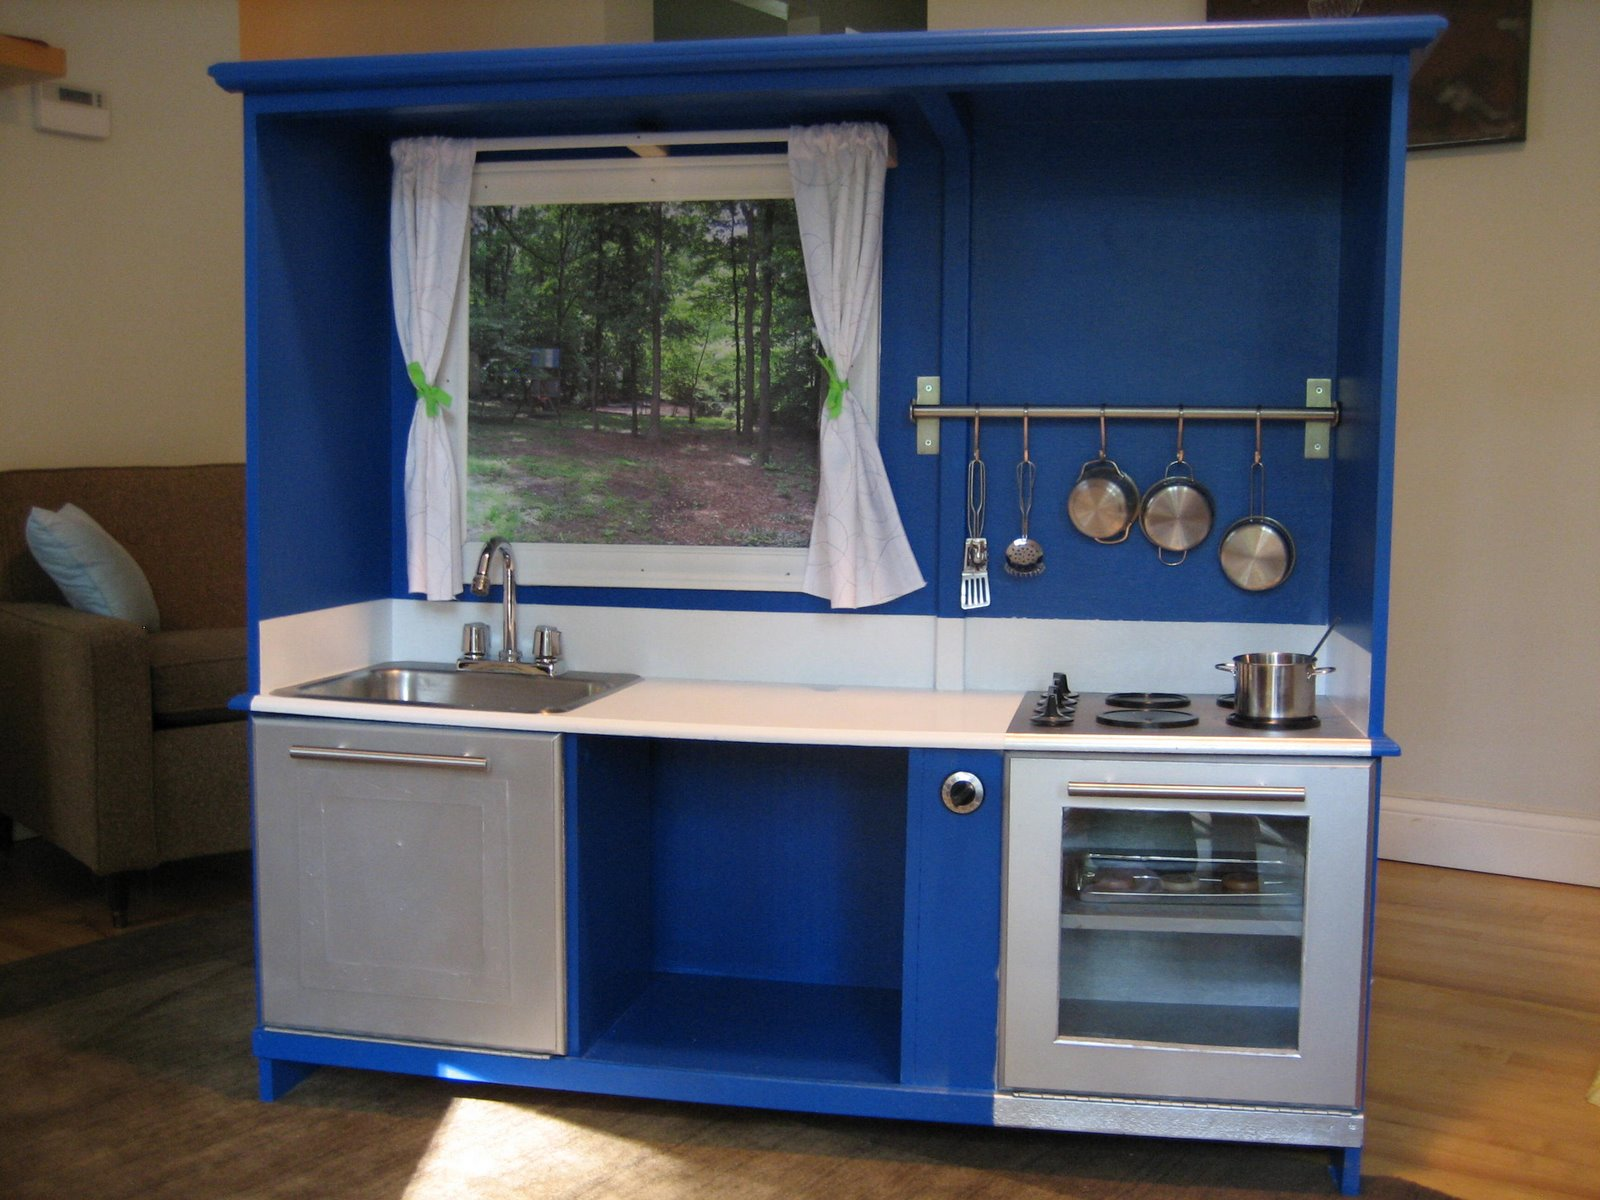 play play building kitchen furniture kids kitchen play sets kids kitchen sets kids kitchen